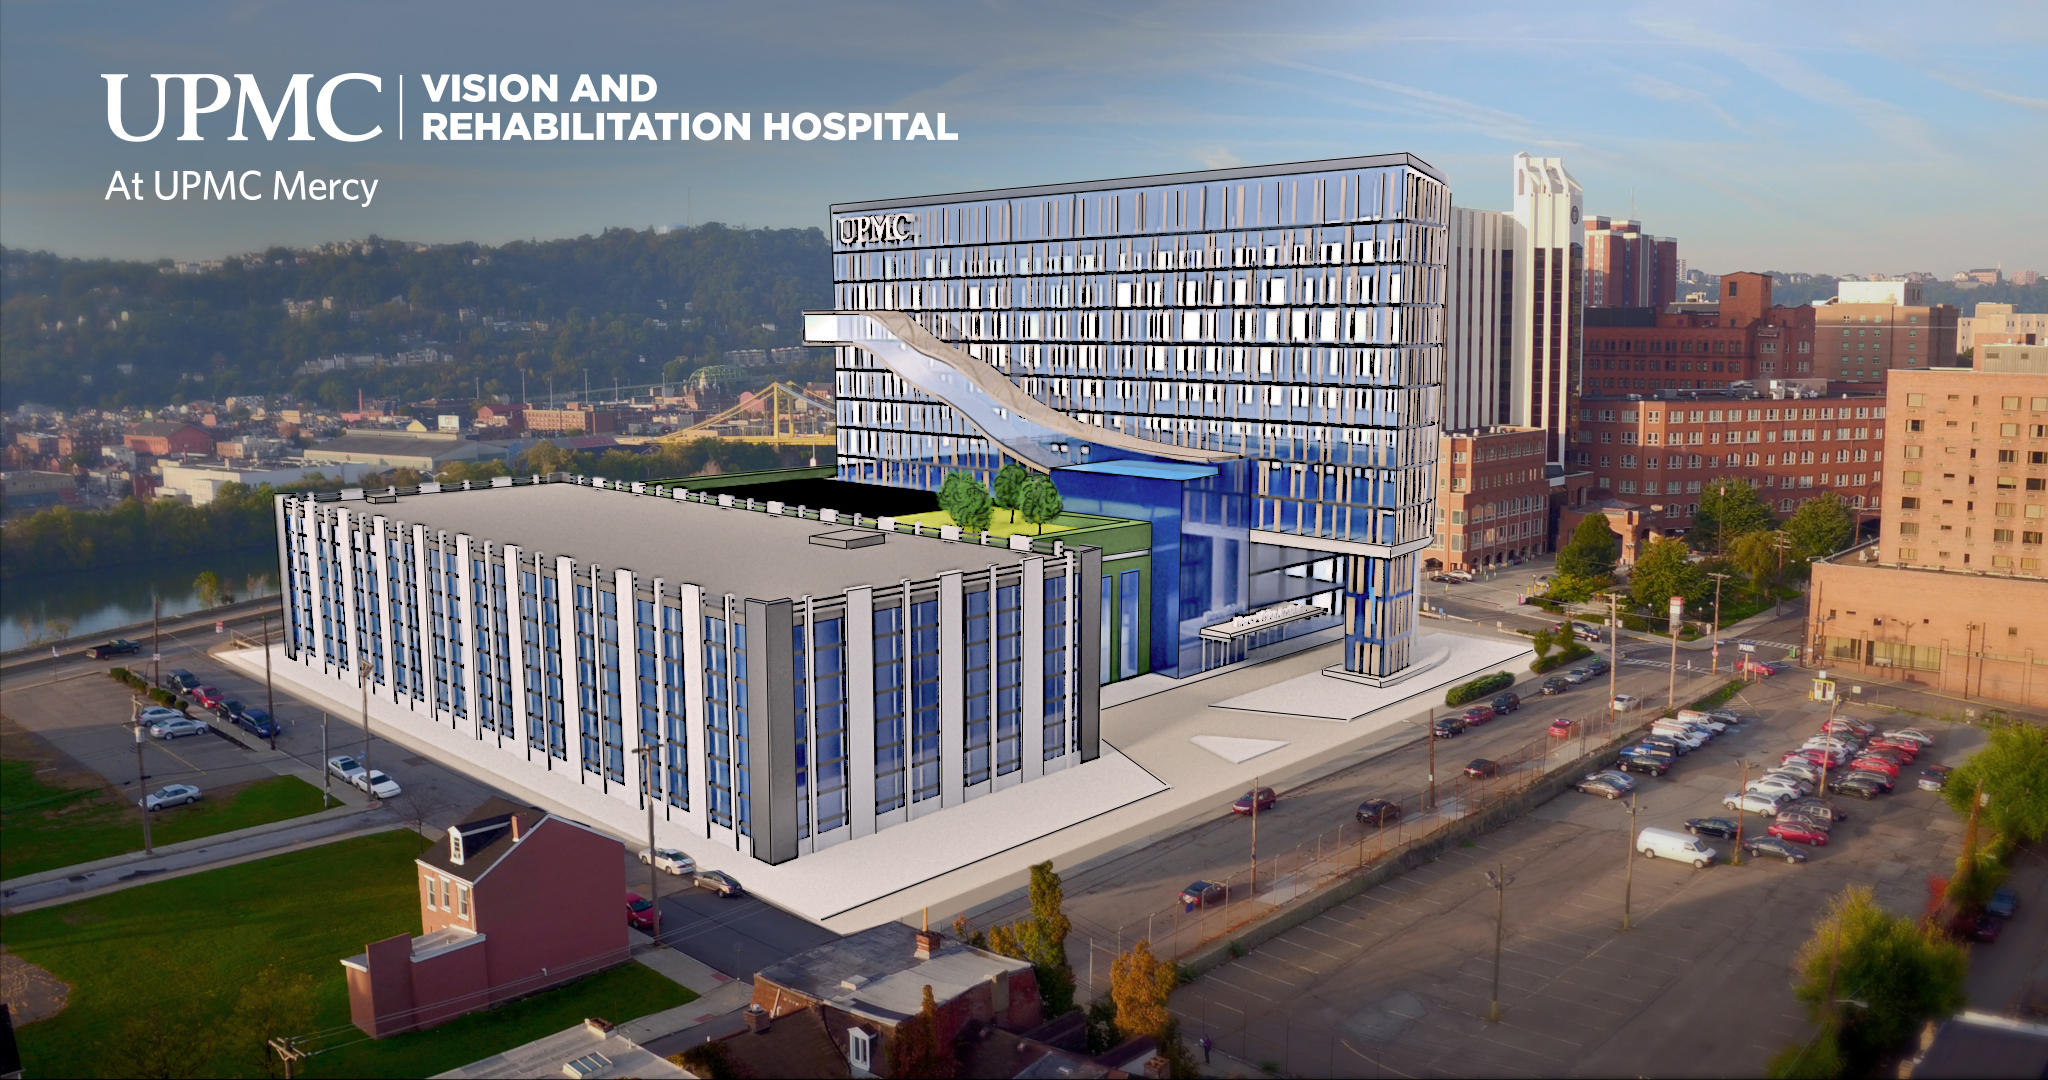 UPMC to Spend $2B on Three New 'Digitally Based' Specialty Hospitals